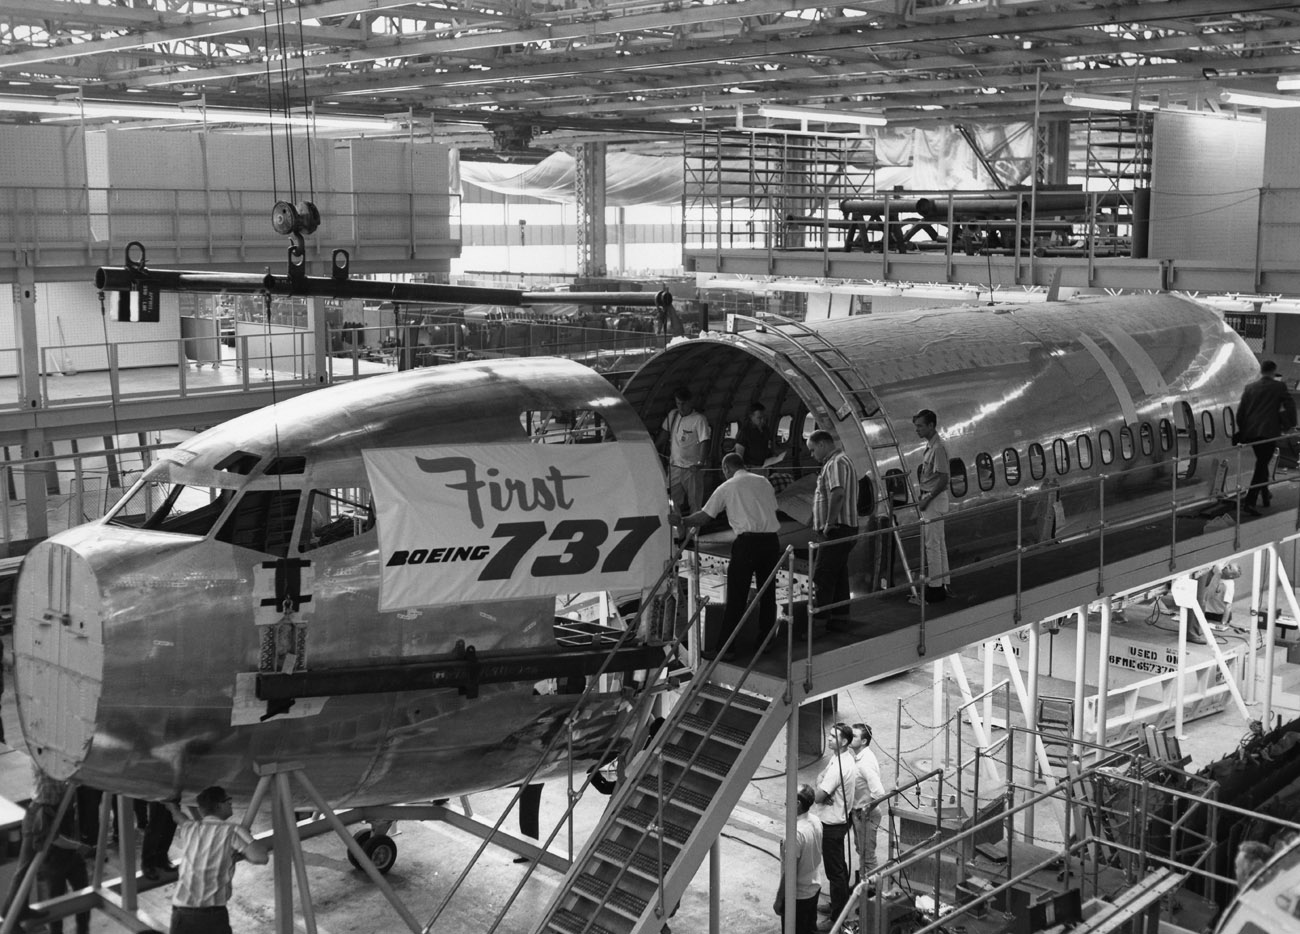 Boeing has built over 8,960 737's since the first one rolled off the line in 1966. As of 2006, there were an average of 1,250 Boeing 737's airborne at any given time, with two departing or landing somewhere every five seconds.  (Boeing)